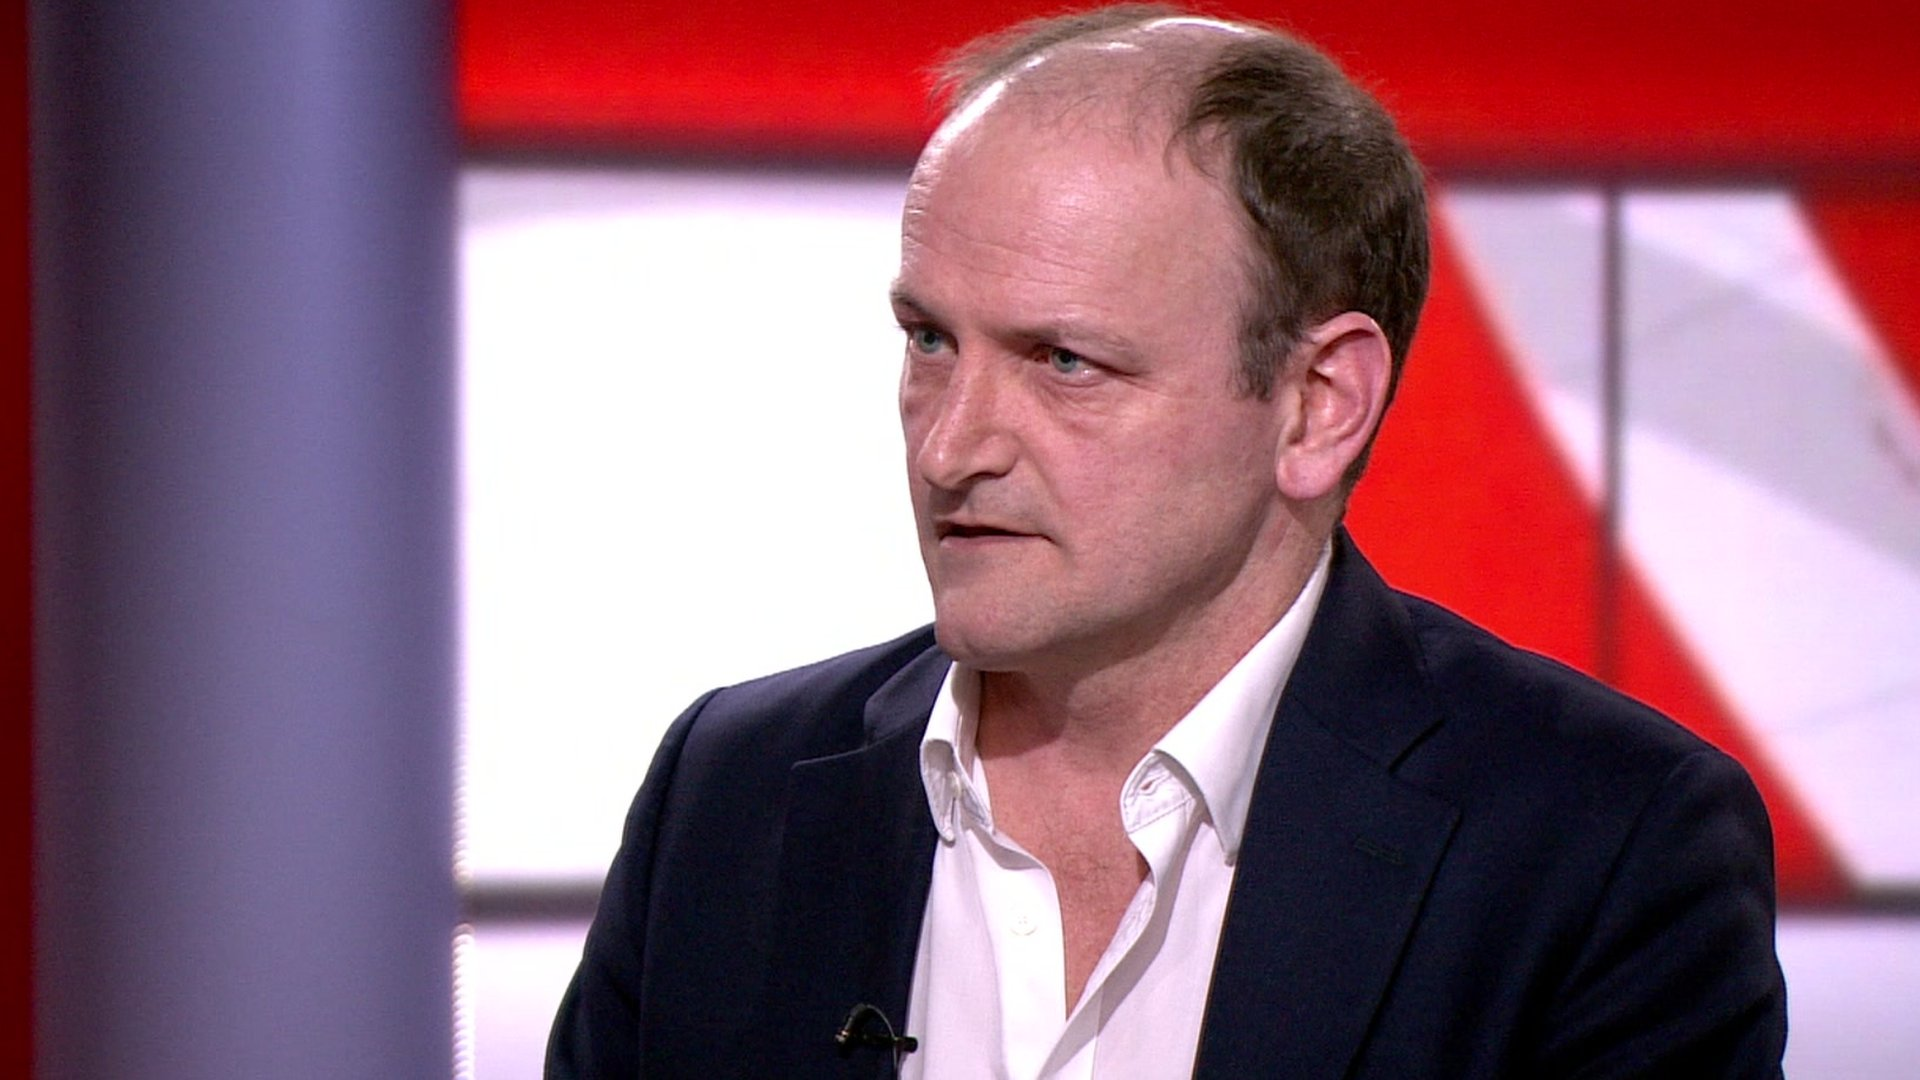 Douglas Carswell quitting UKIP to become independent MP for Clacton